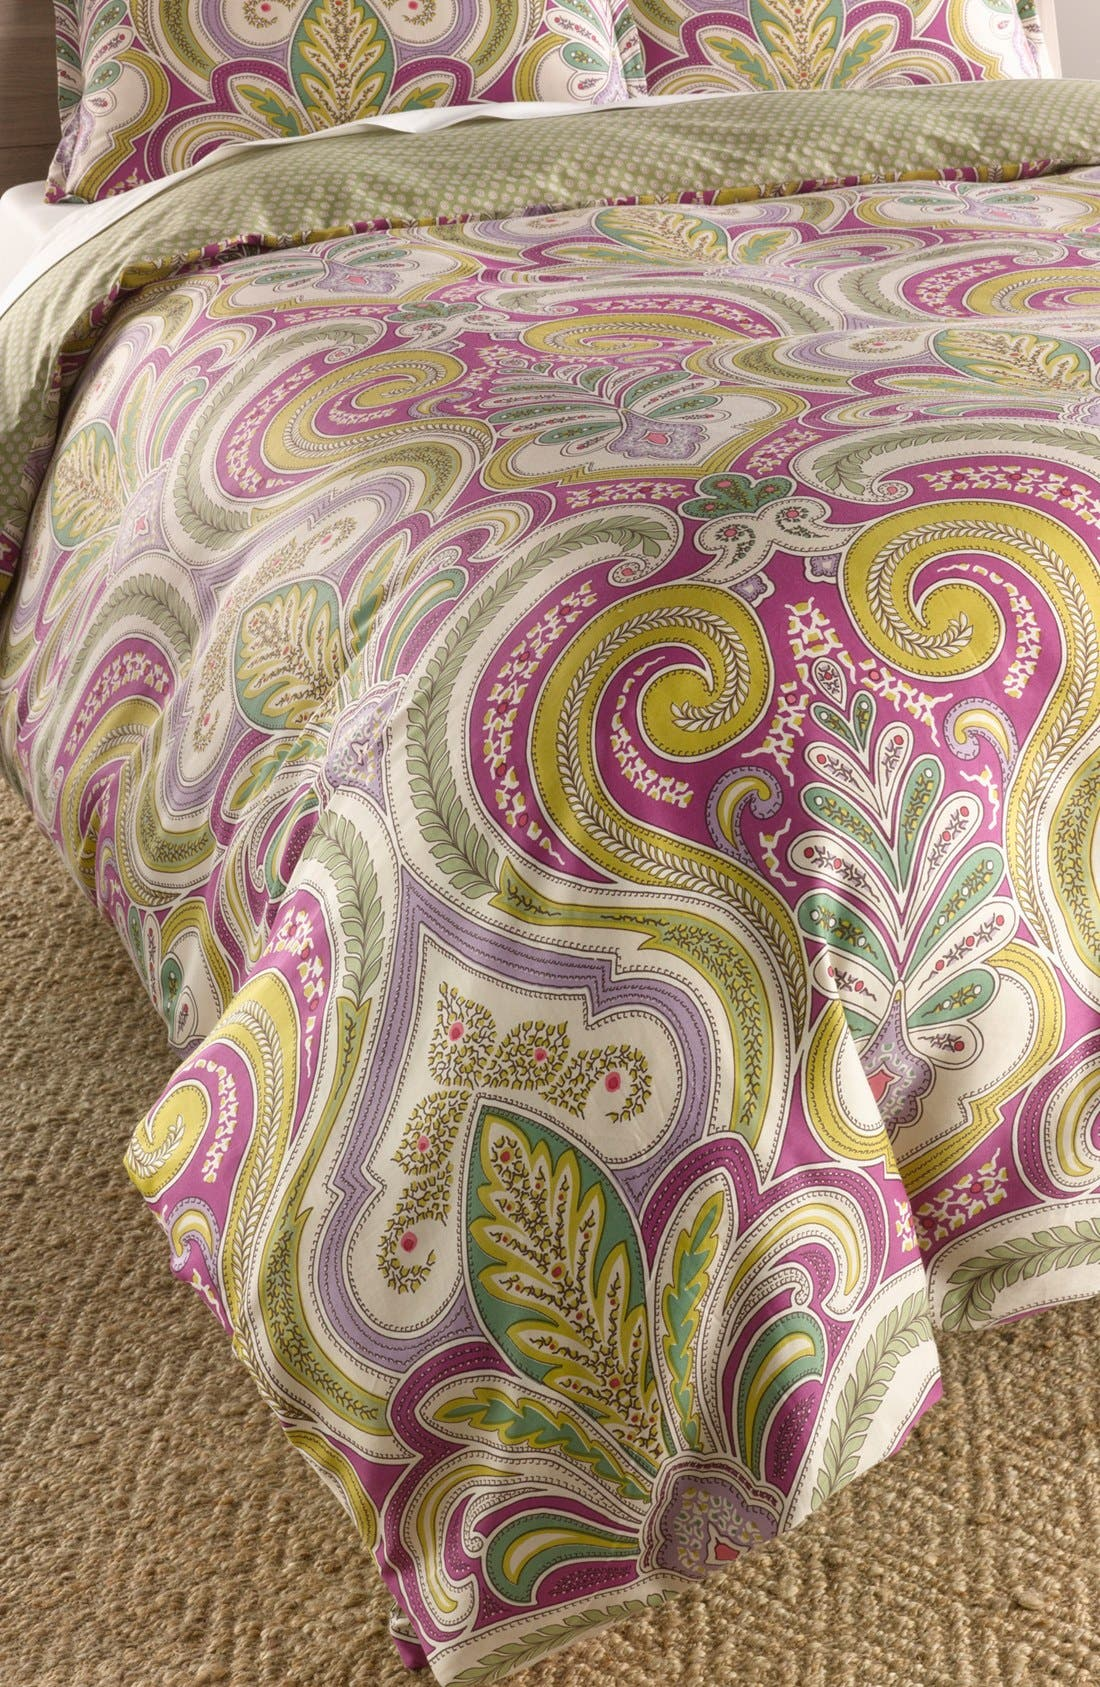 Alternate Image 1 Selected - Echo 'Vineyard' Duvet Cover